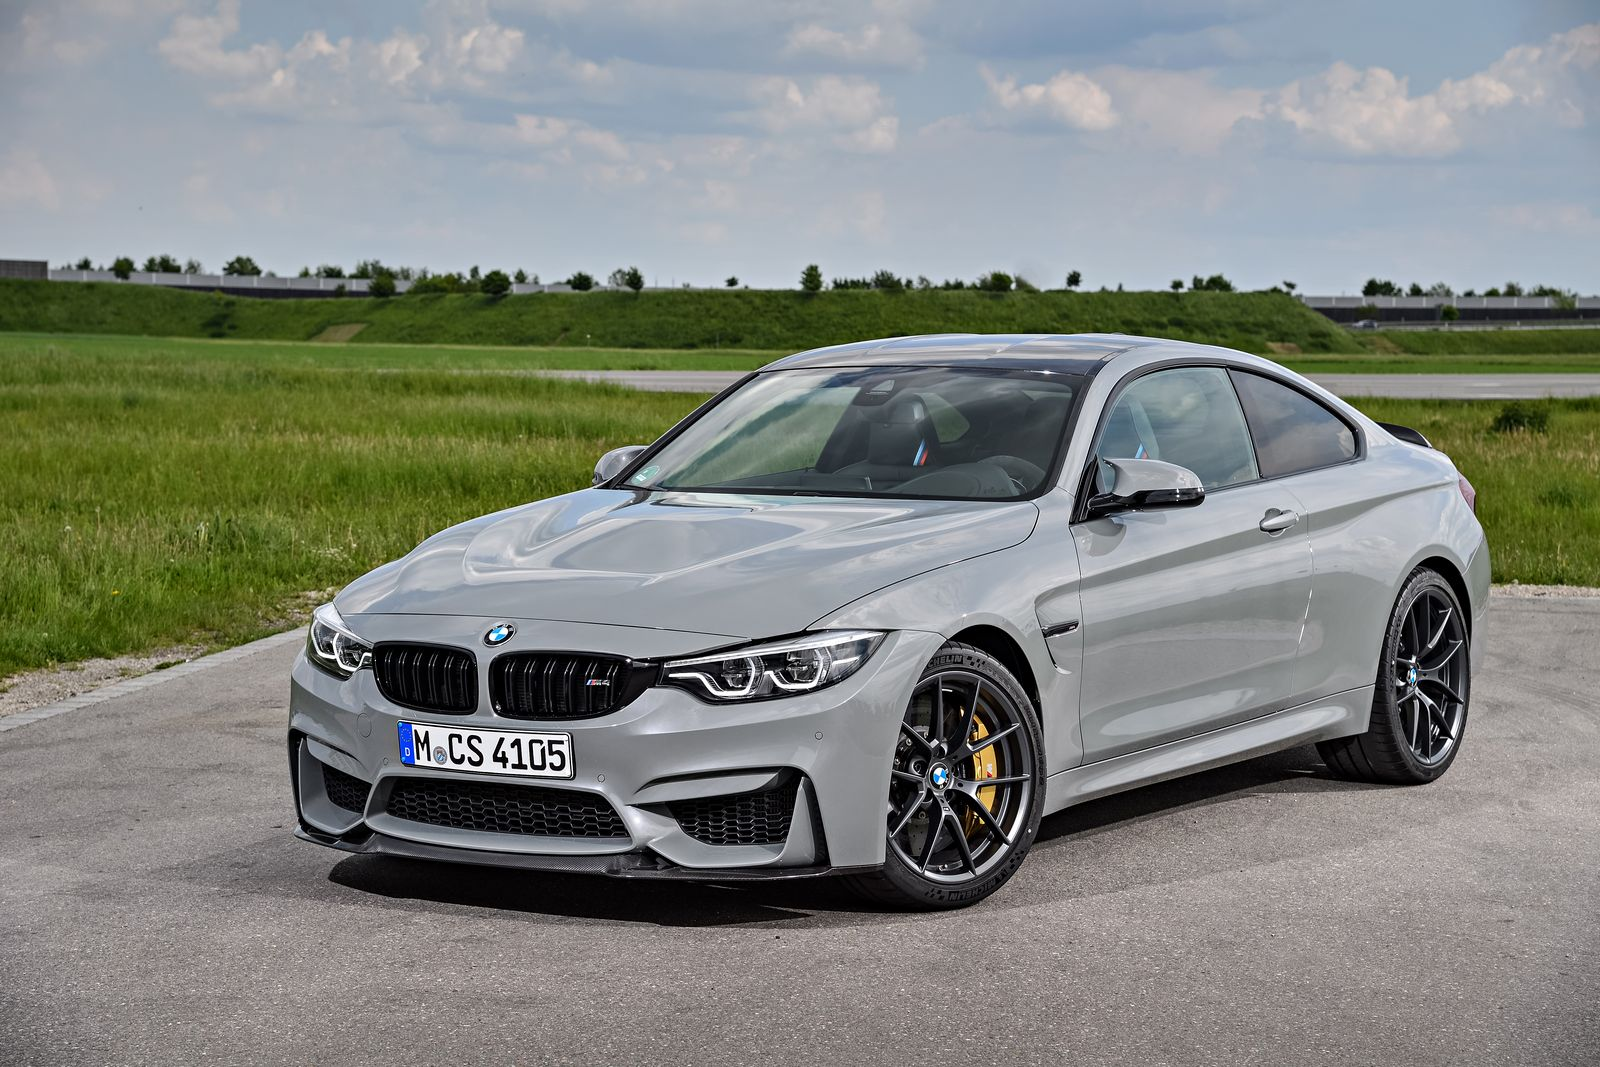 2018 Bmw M4 Cs Stuns In New Gallery 186 Pics Carscoops